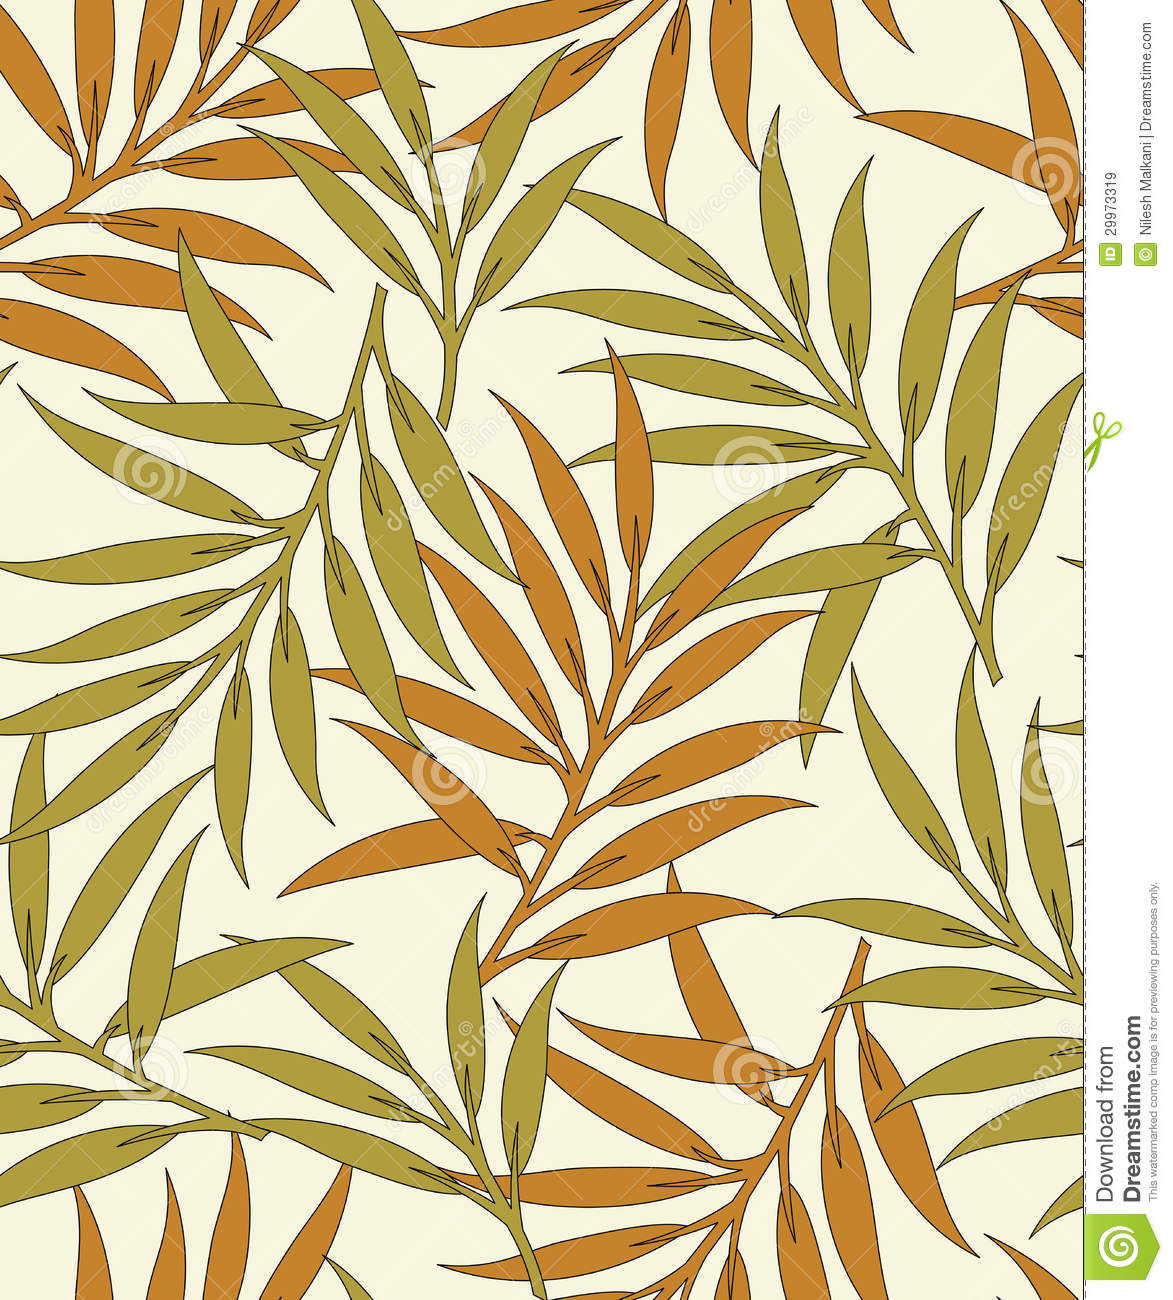 Bed sheets texture seamless - Seamless Vector Leaves Background Pattern